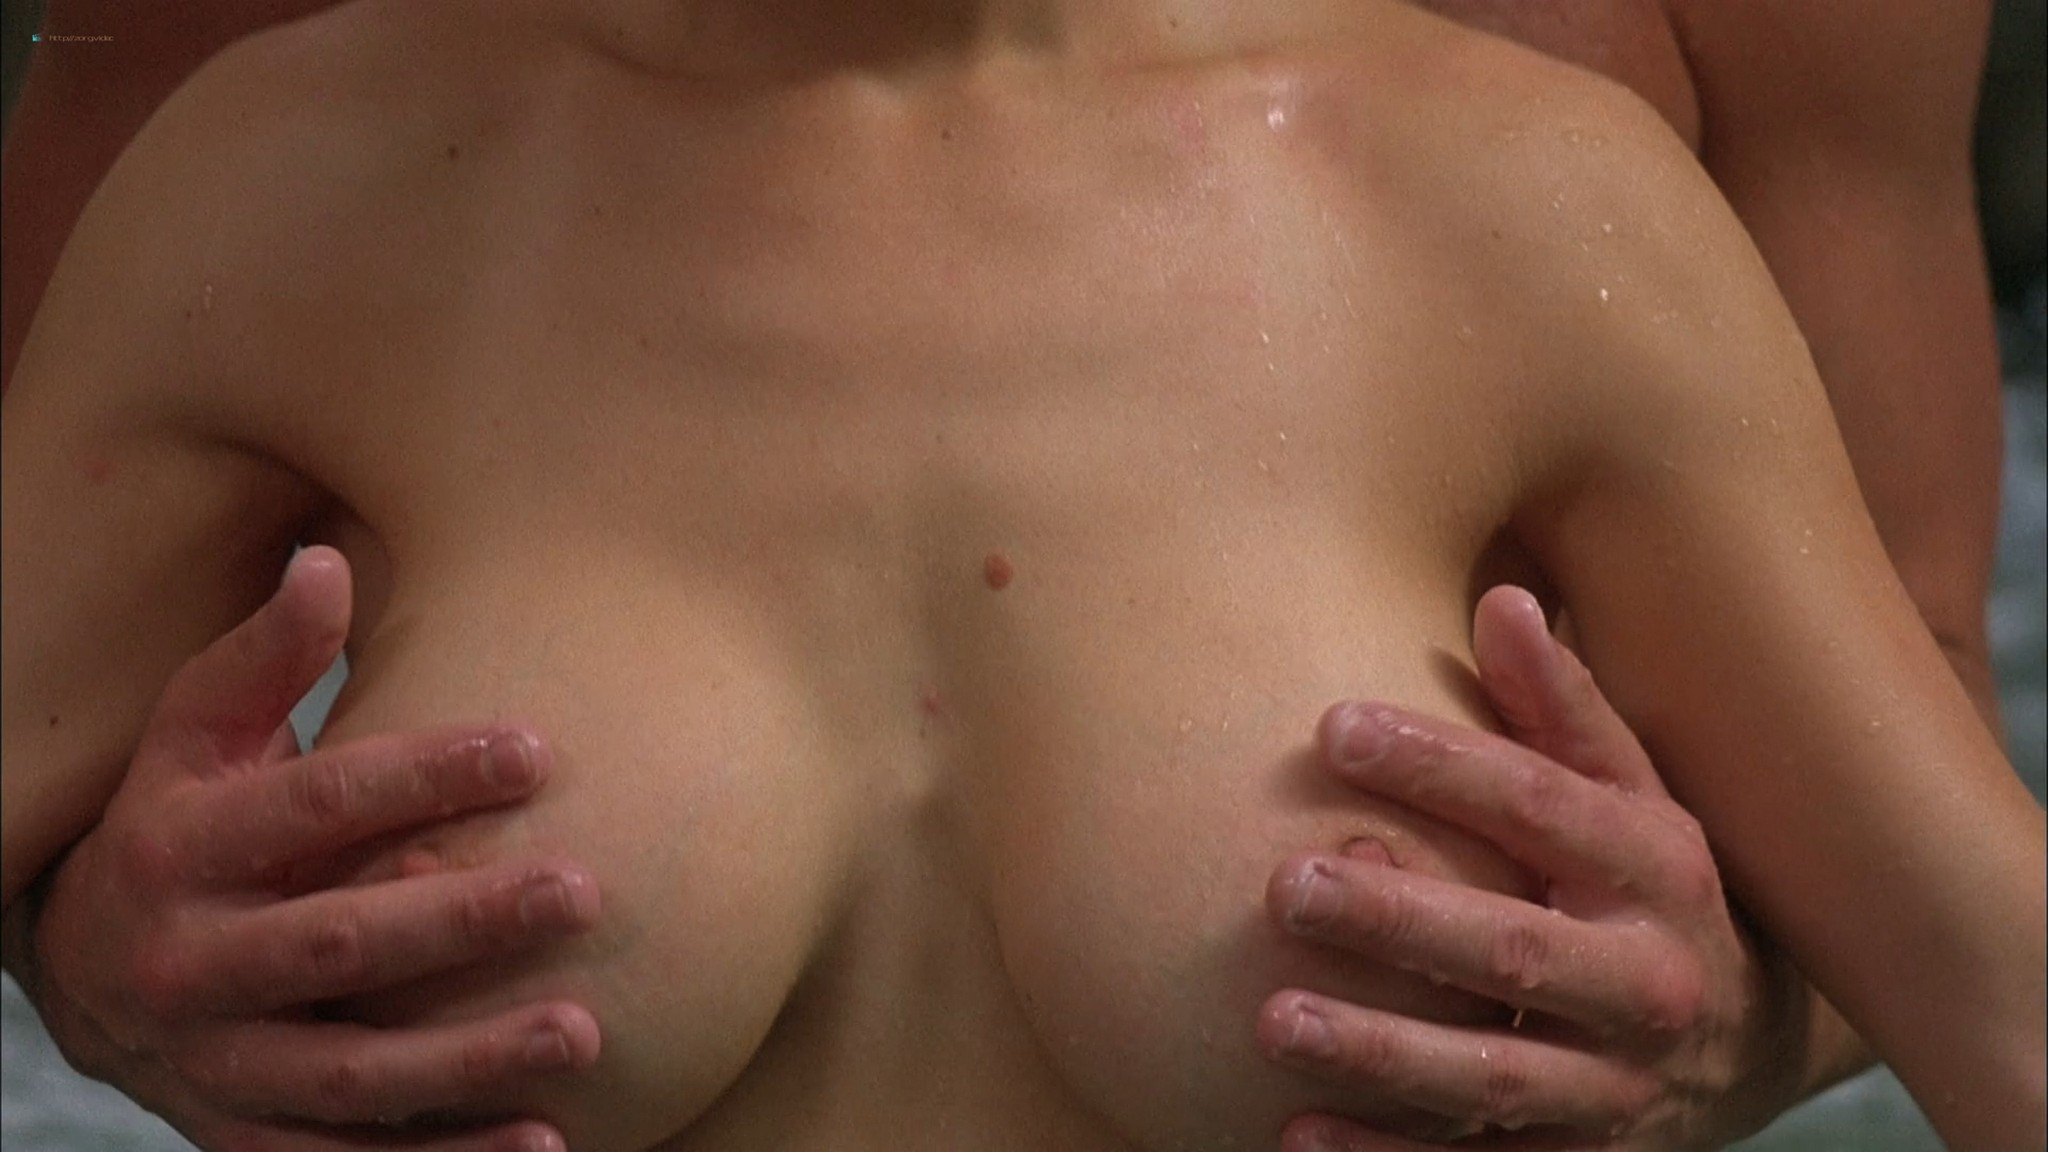 Kari Wuhrer wet and hot Amy Lindsay and others nude sex - Final Examination (2003) HD 1080p Web (12)